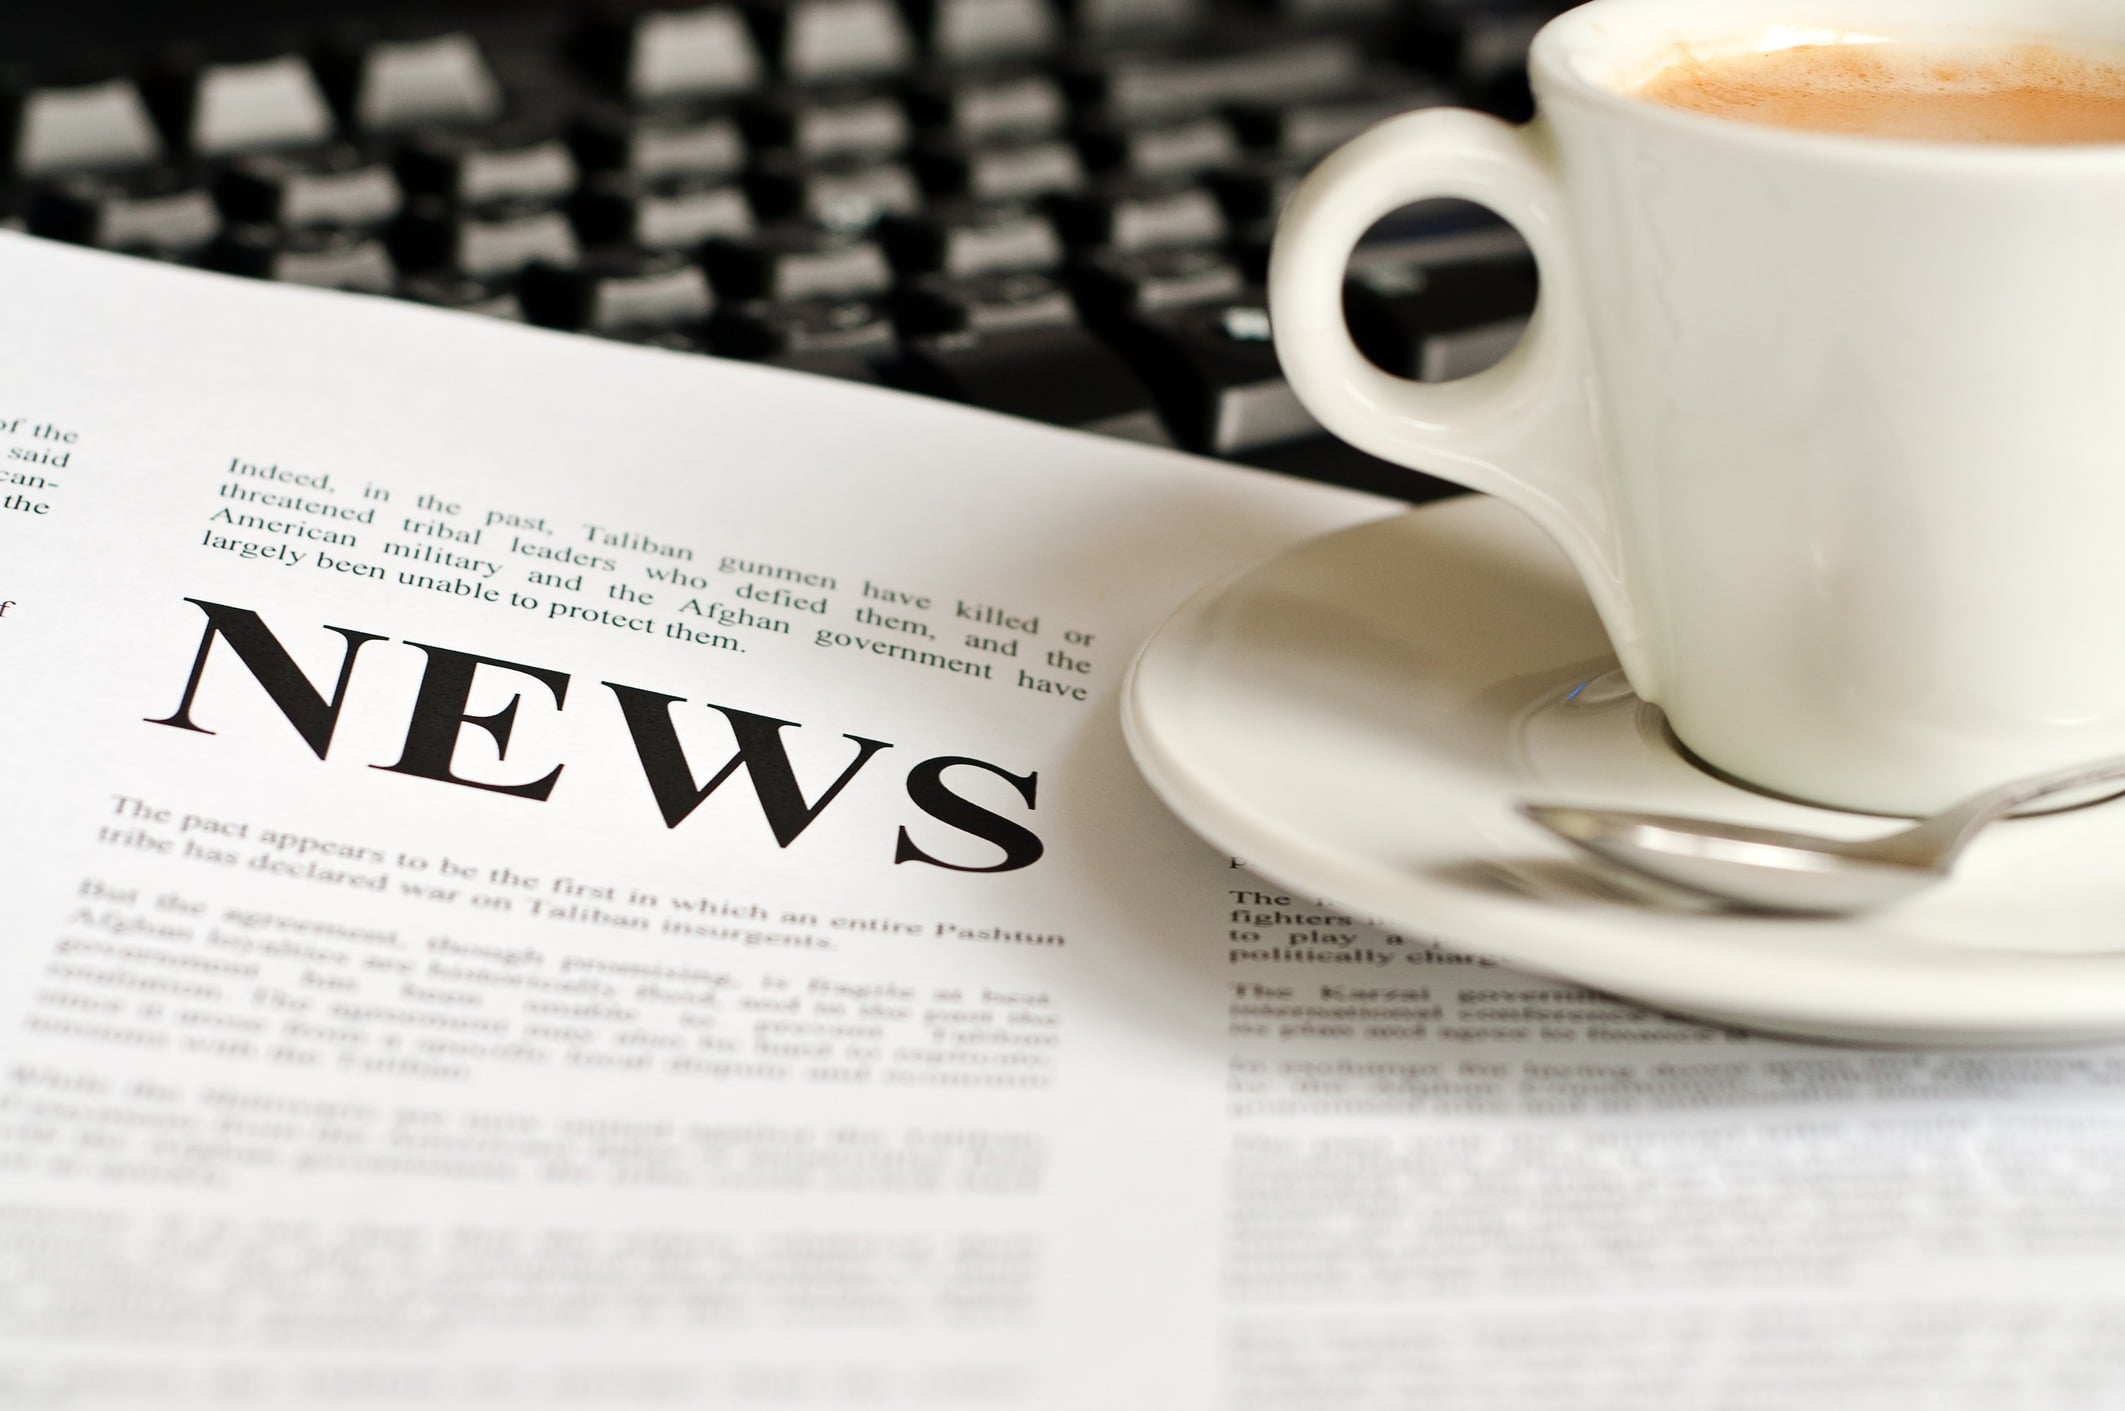 Vulnerable people news